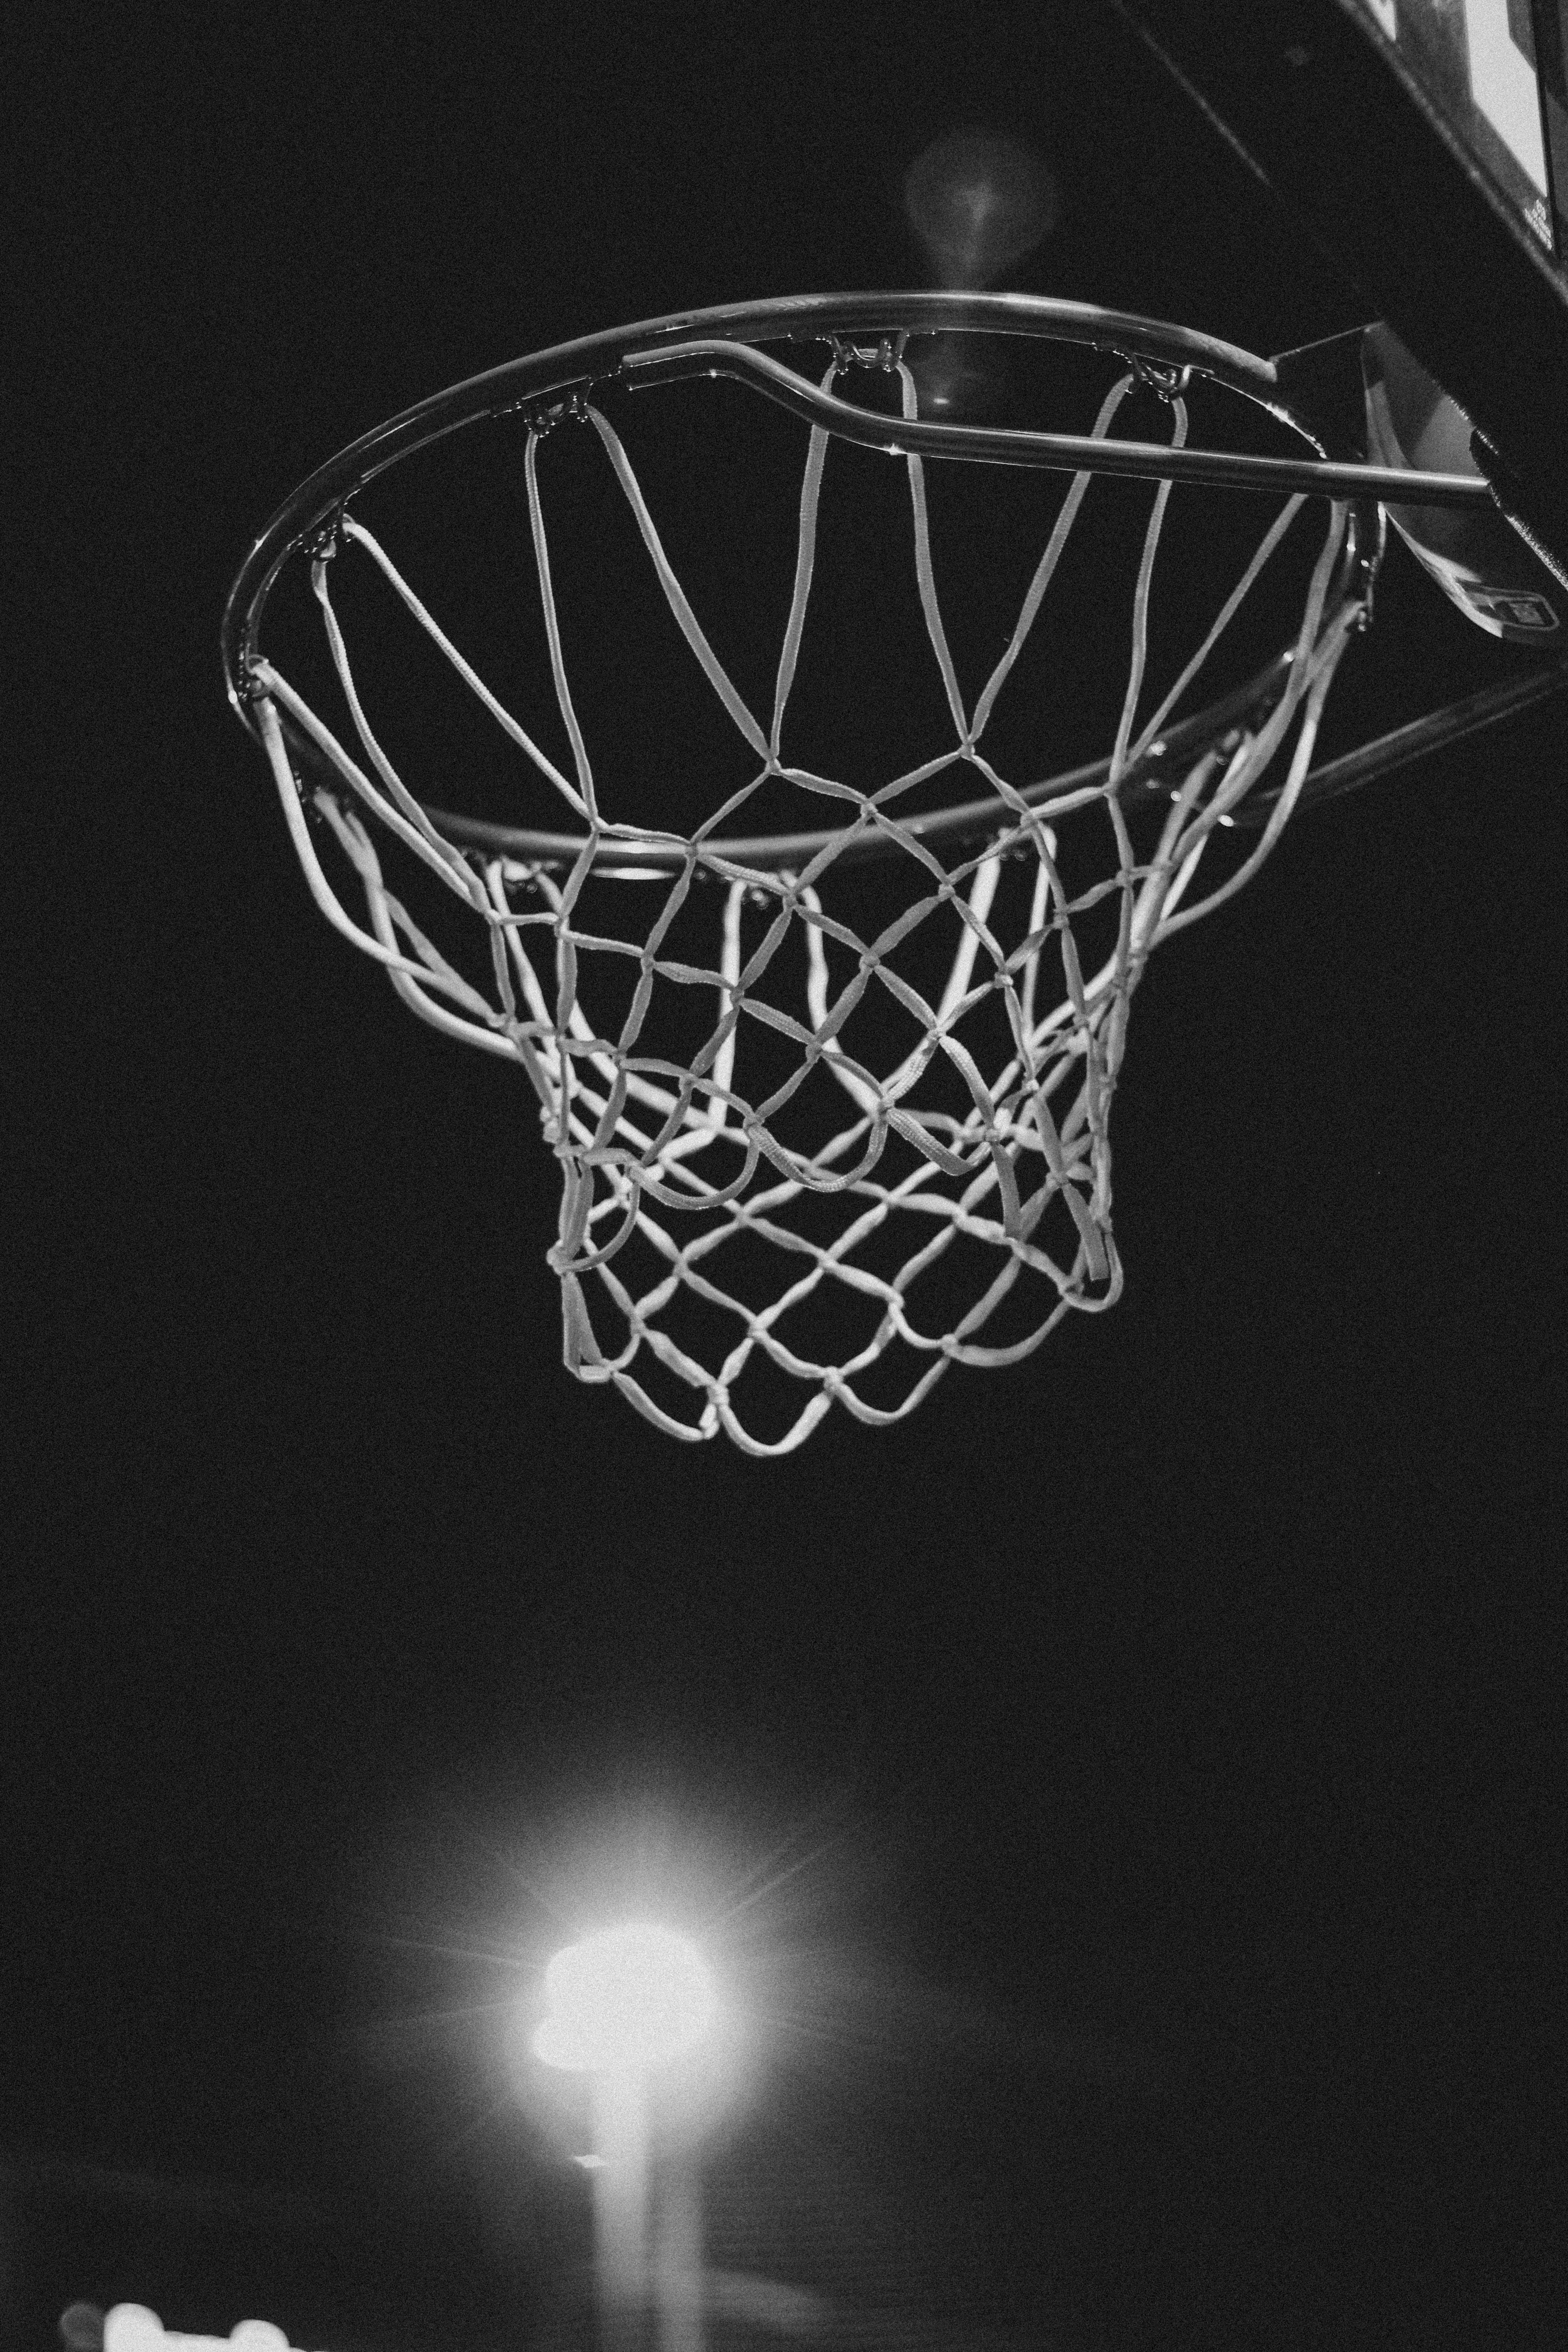 122547 Screensavers and Wallpapers Basketball for phone. Download Dark, Basketball Hoop, Basketball Ring, Bw, Chb, Grid, Basketball pictures for free